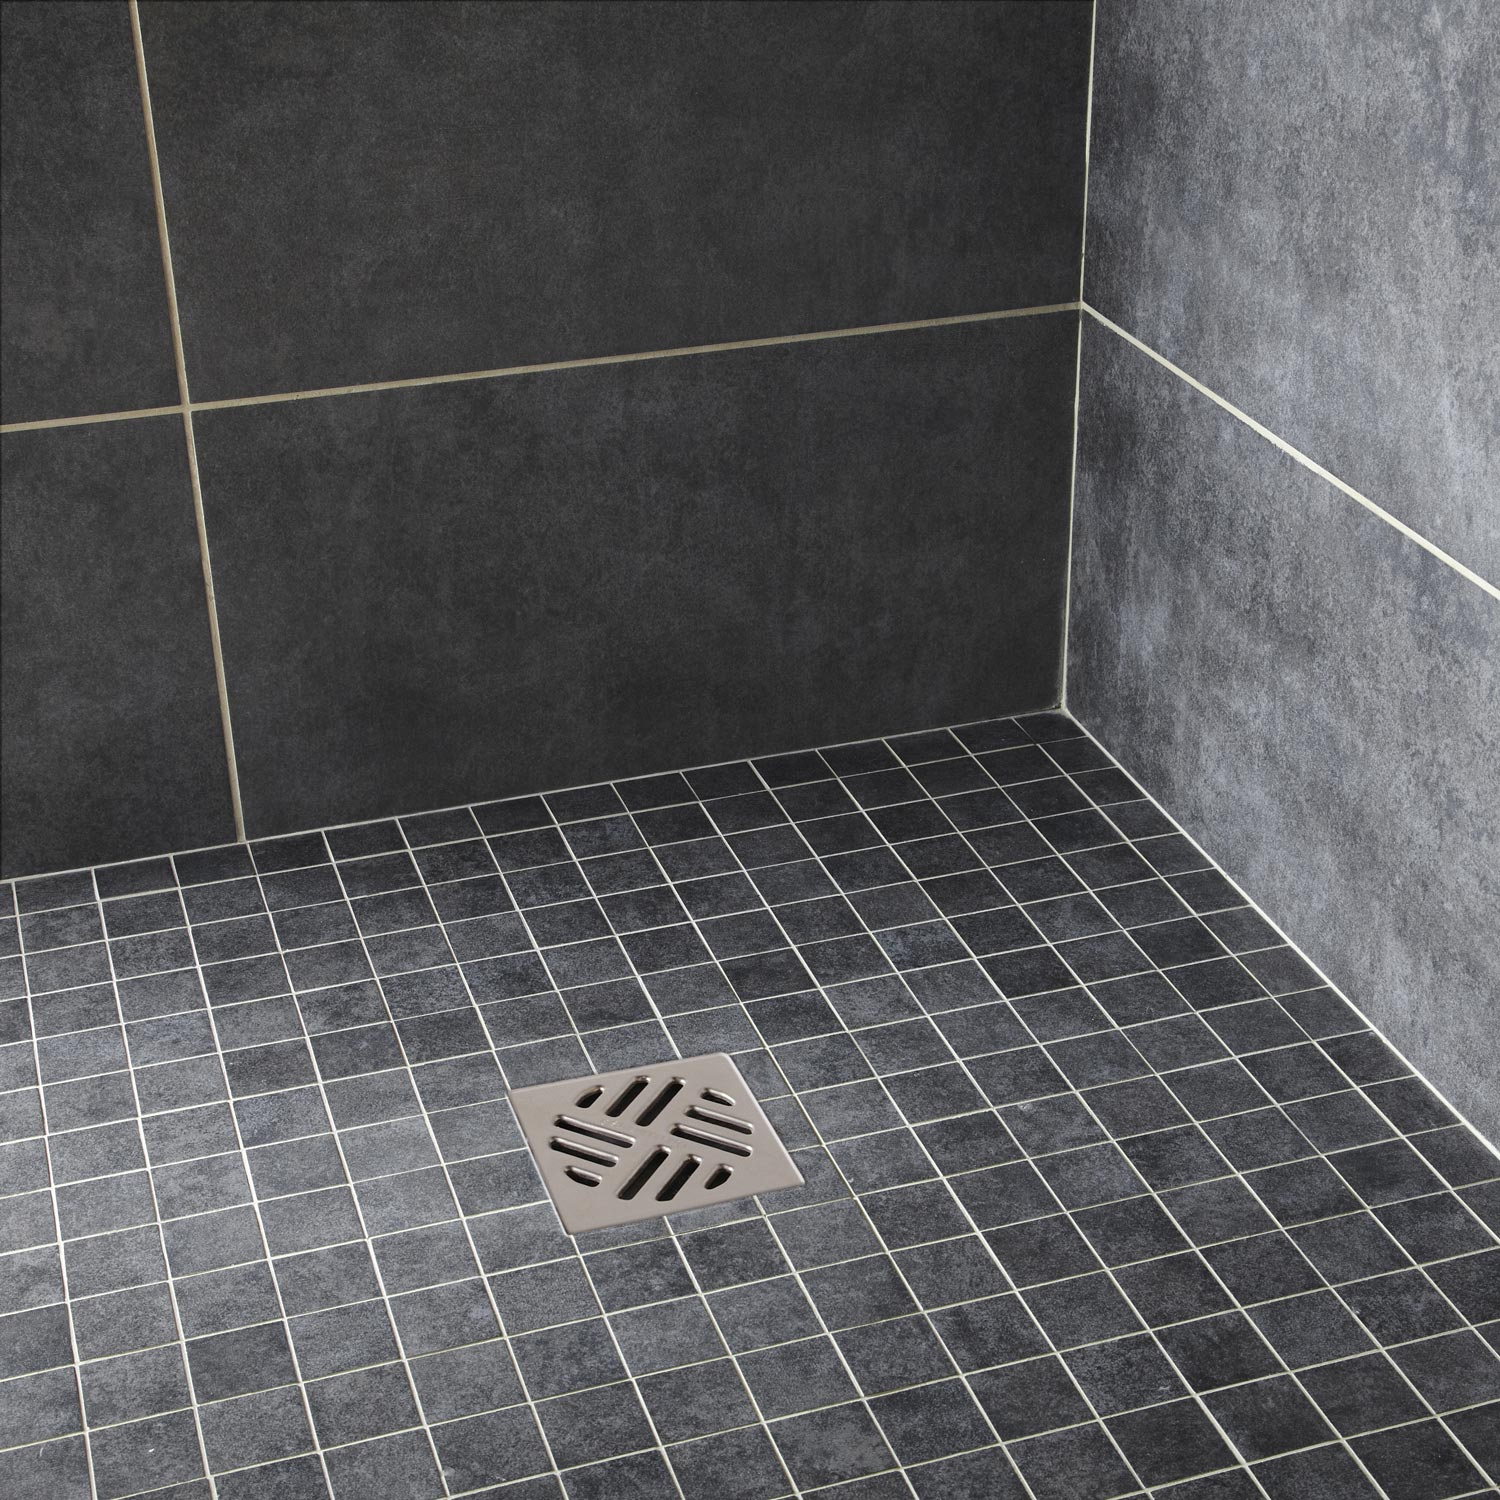 Salle de bain travertin leroy merlin - Leroy merlin carrelage ...